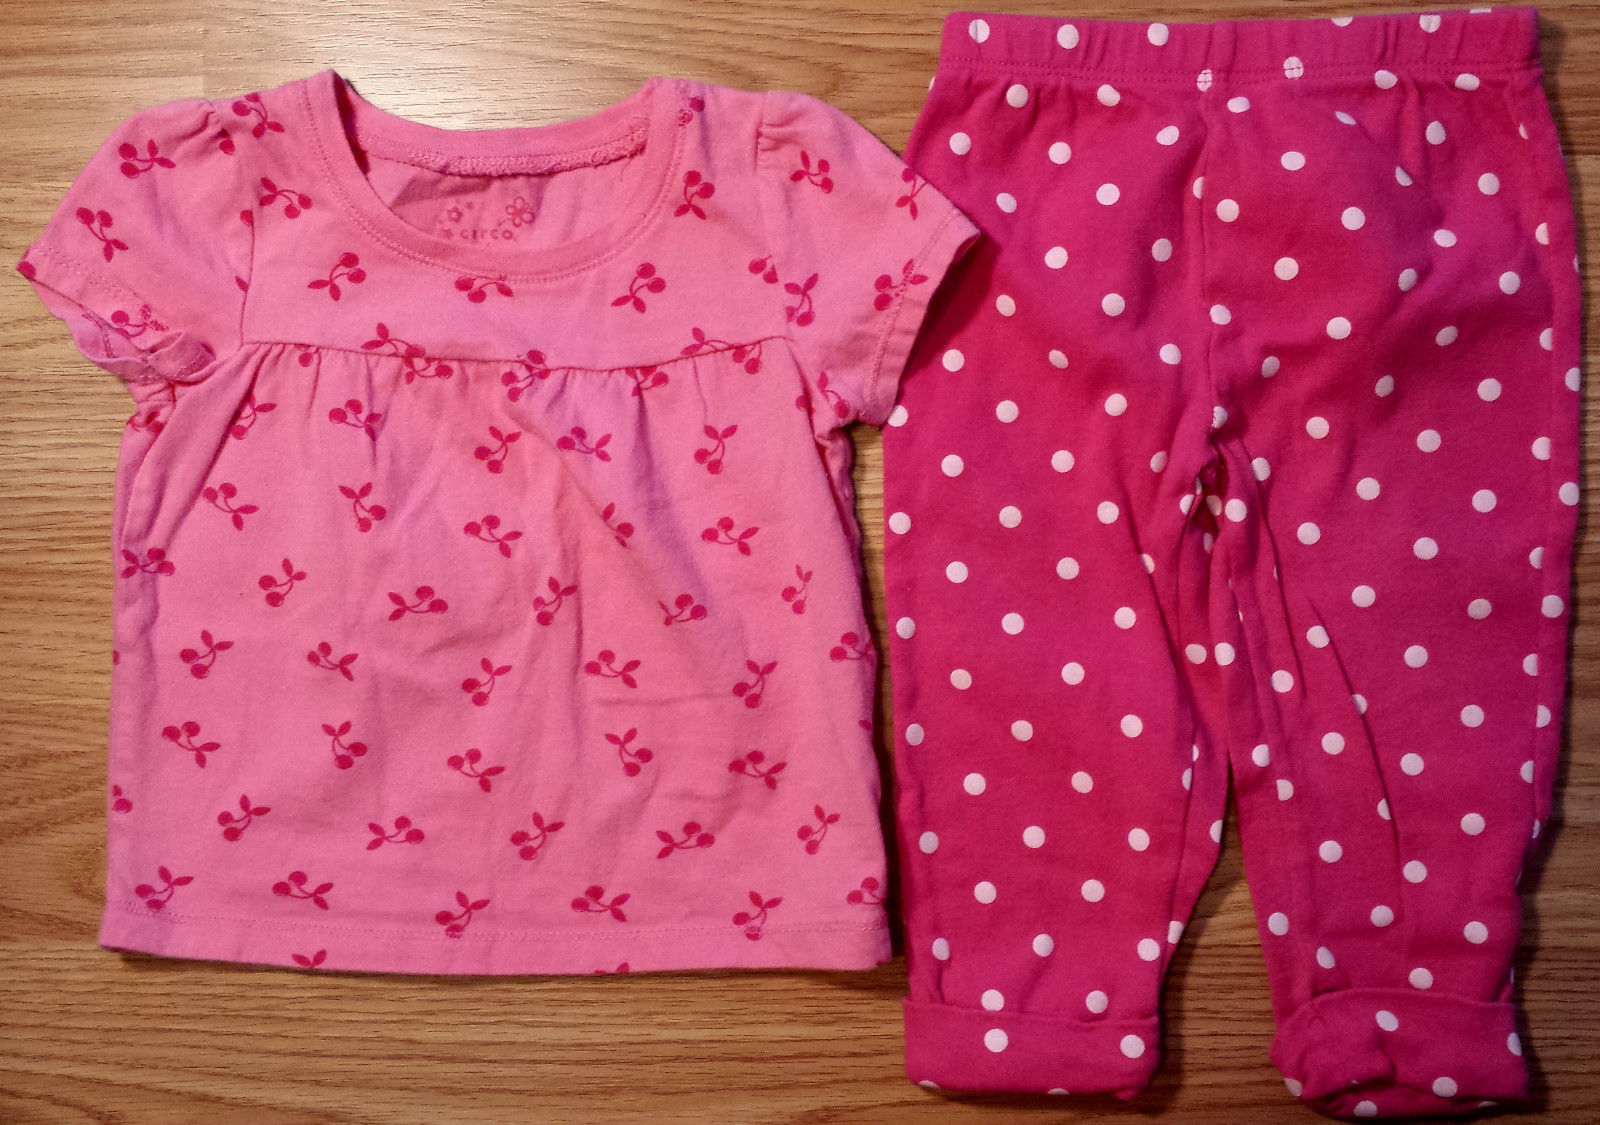 dbf36fad3 S l1600. S l1600. Previous. Girl's Size 12 M Months Two Piece Pink Chery  Designed Circo Top & Carter's Pants